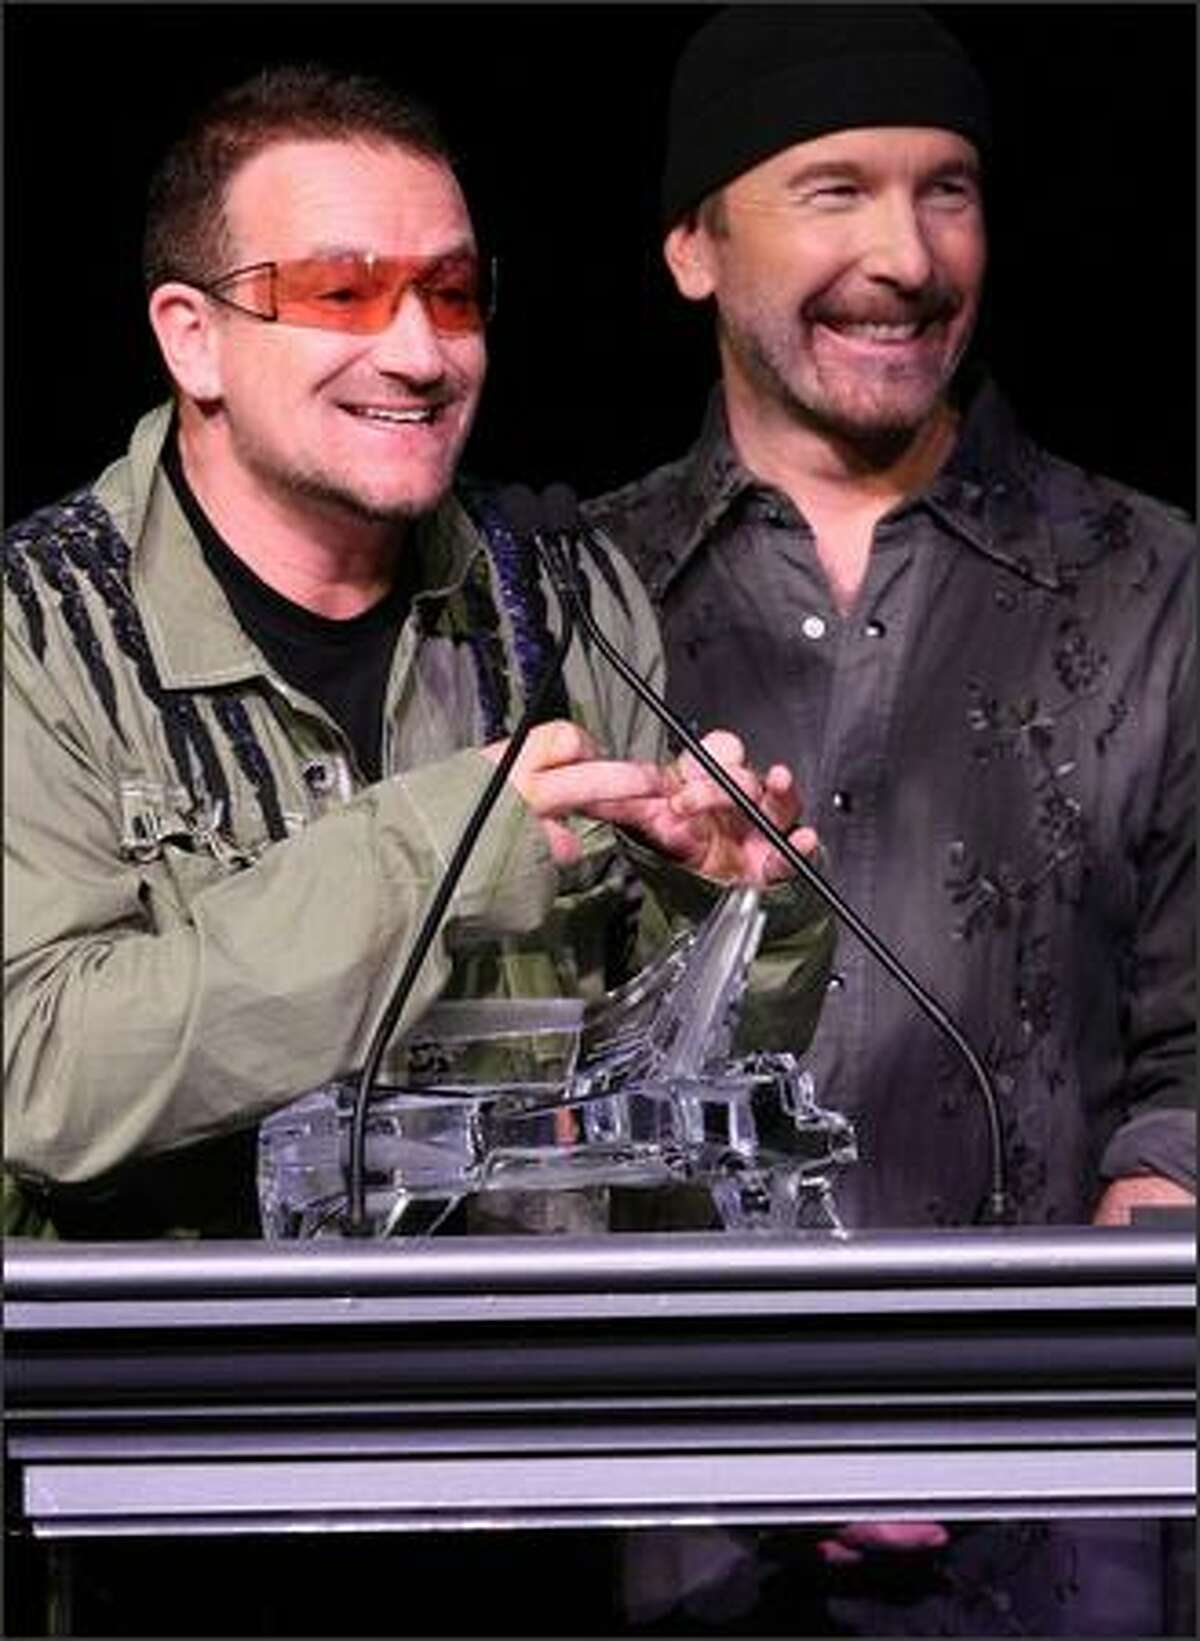 Musicians Bono and The Edge of U2 onstage during the Thelonious Monk Institute of Jazz honoring B.B. King event held at the Kodak Theatre on October 26, 2008, in Los Angeles, California. (Getty)